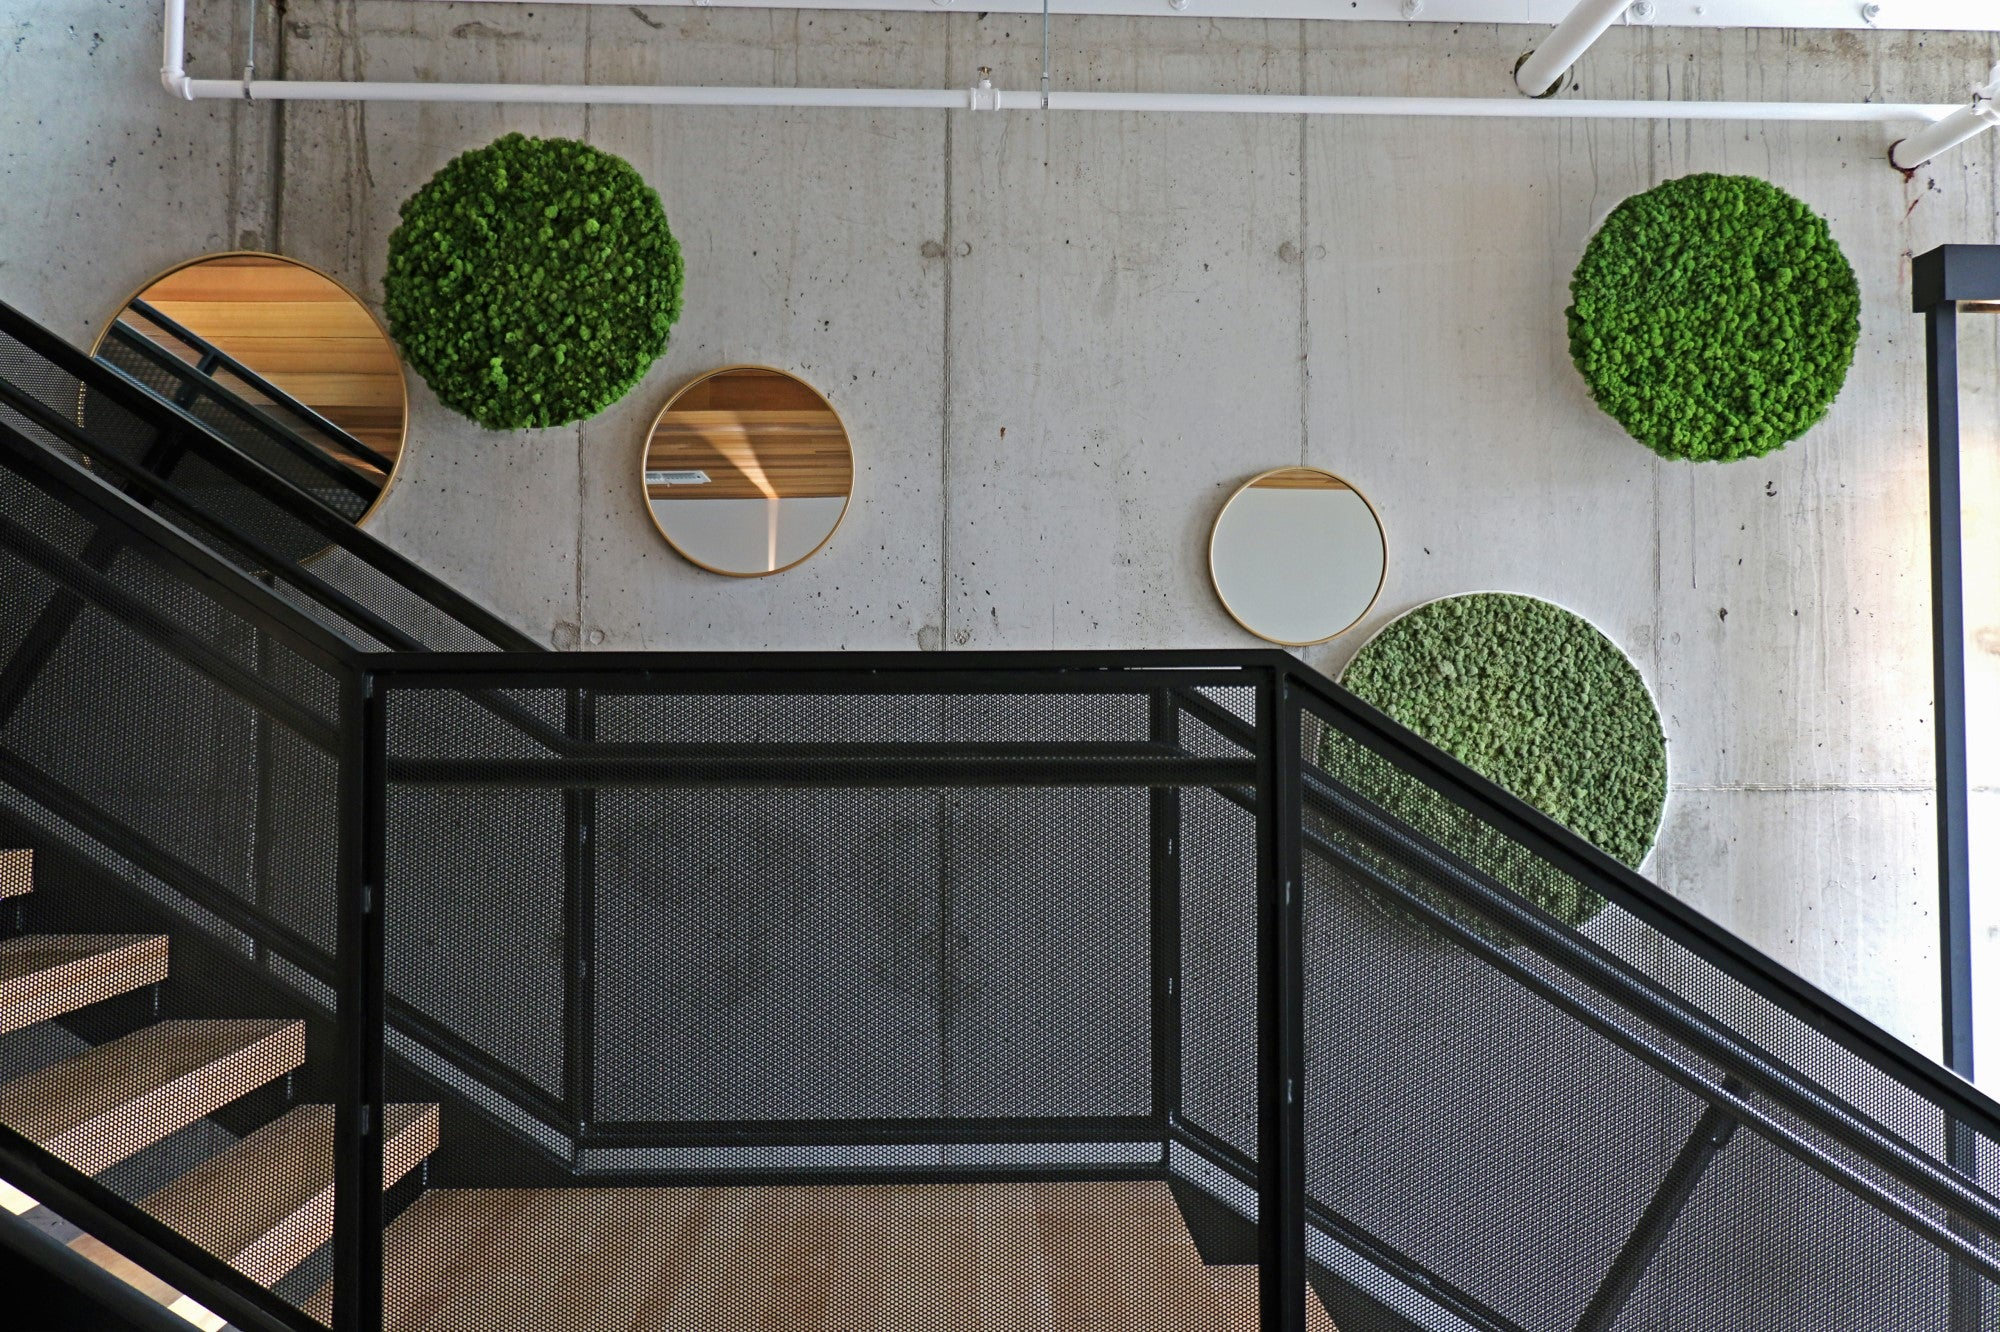 A staircase wall lined with large moss circles in various shades of green, interspersed with round mirrors.